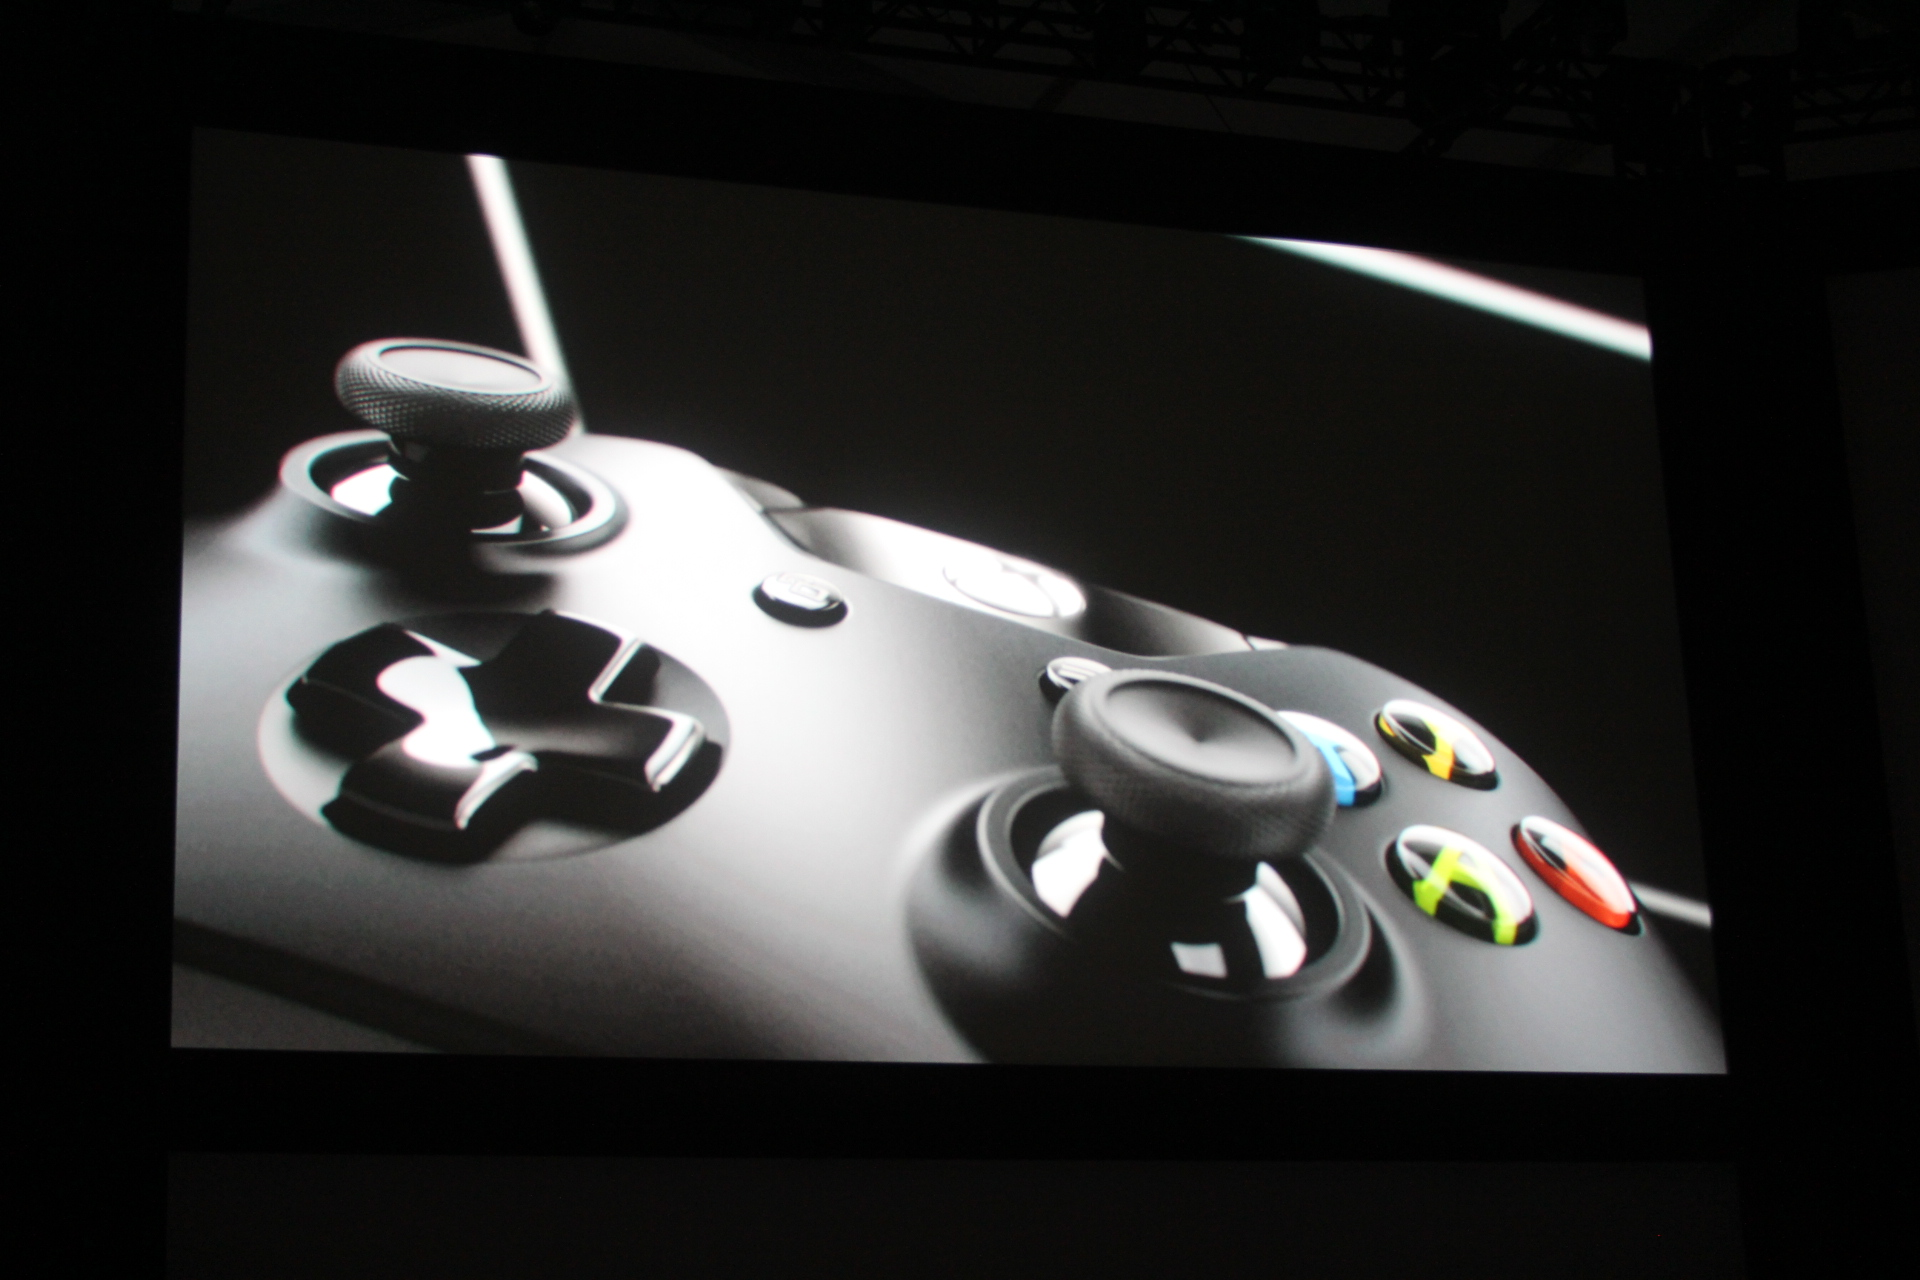 0016 Microsoft introduces new controller for Xbox One console with redesigned d pad